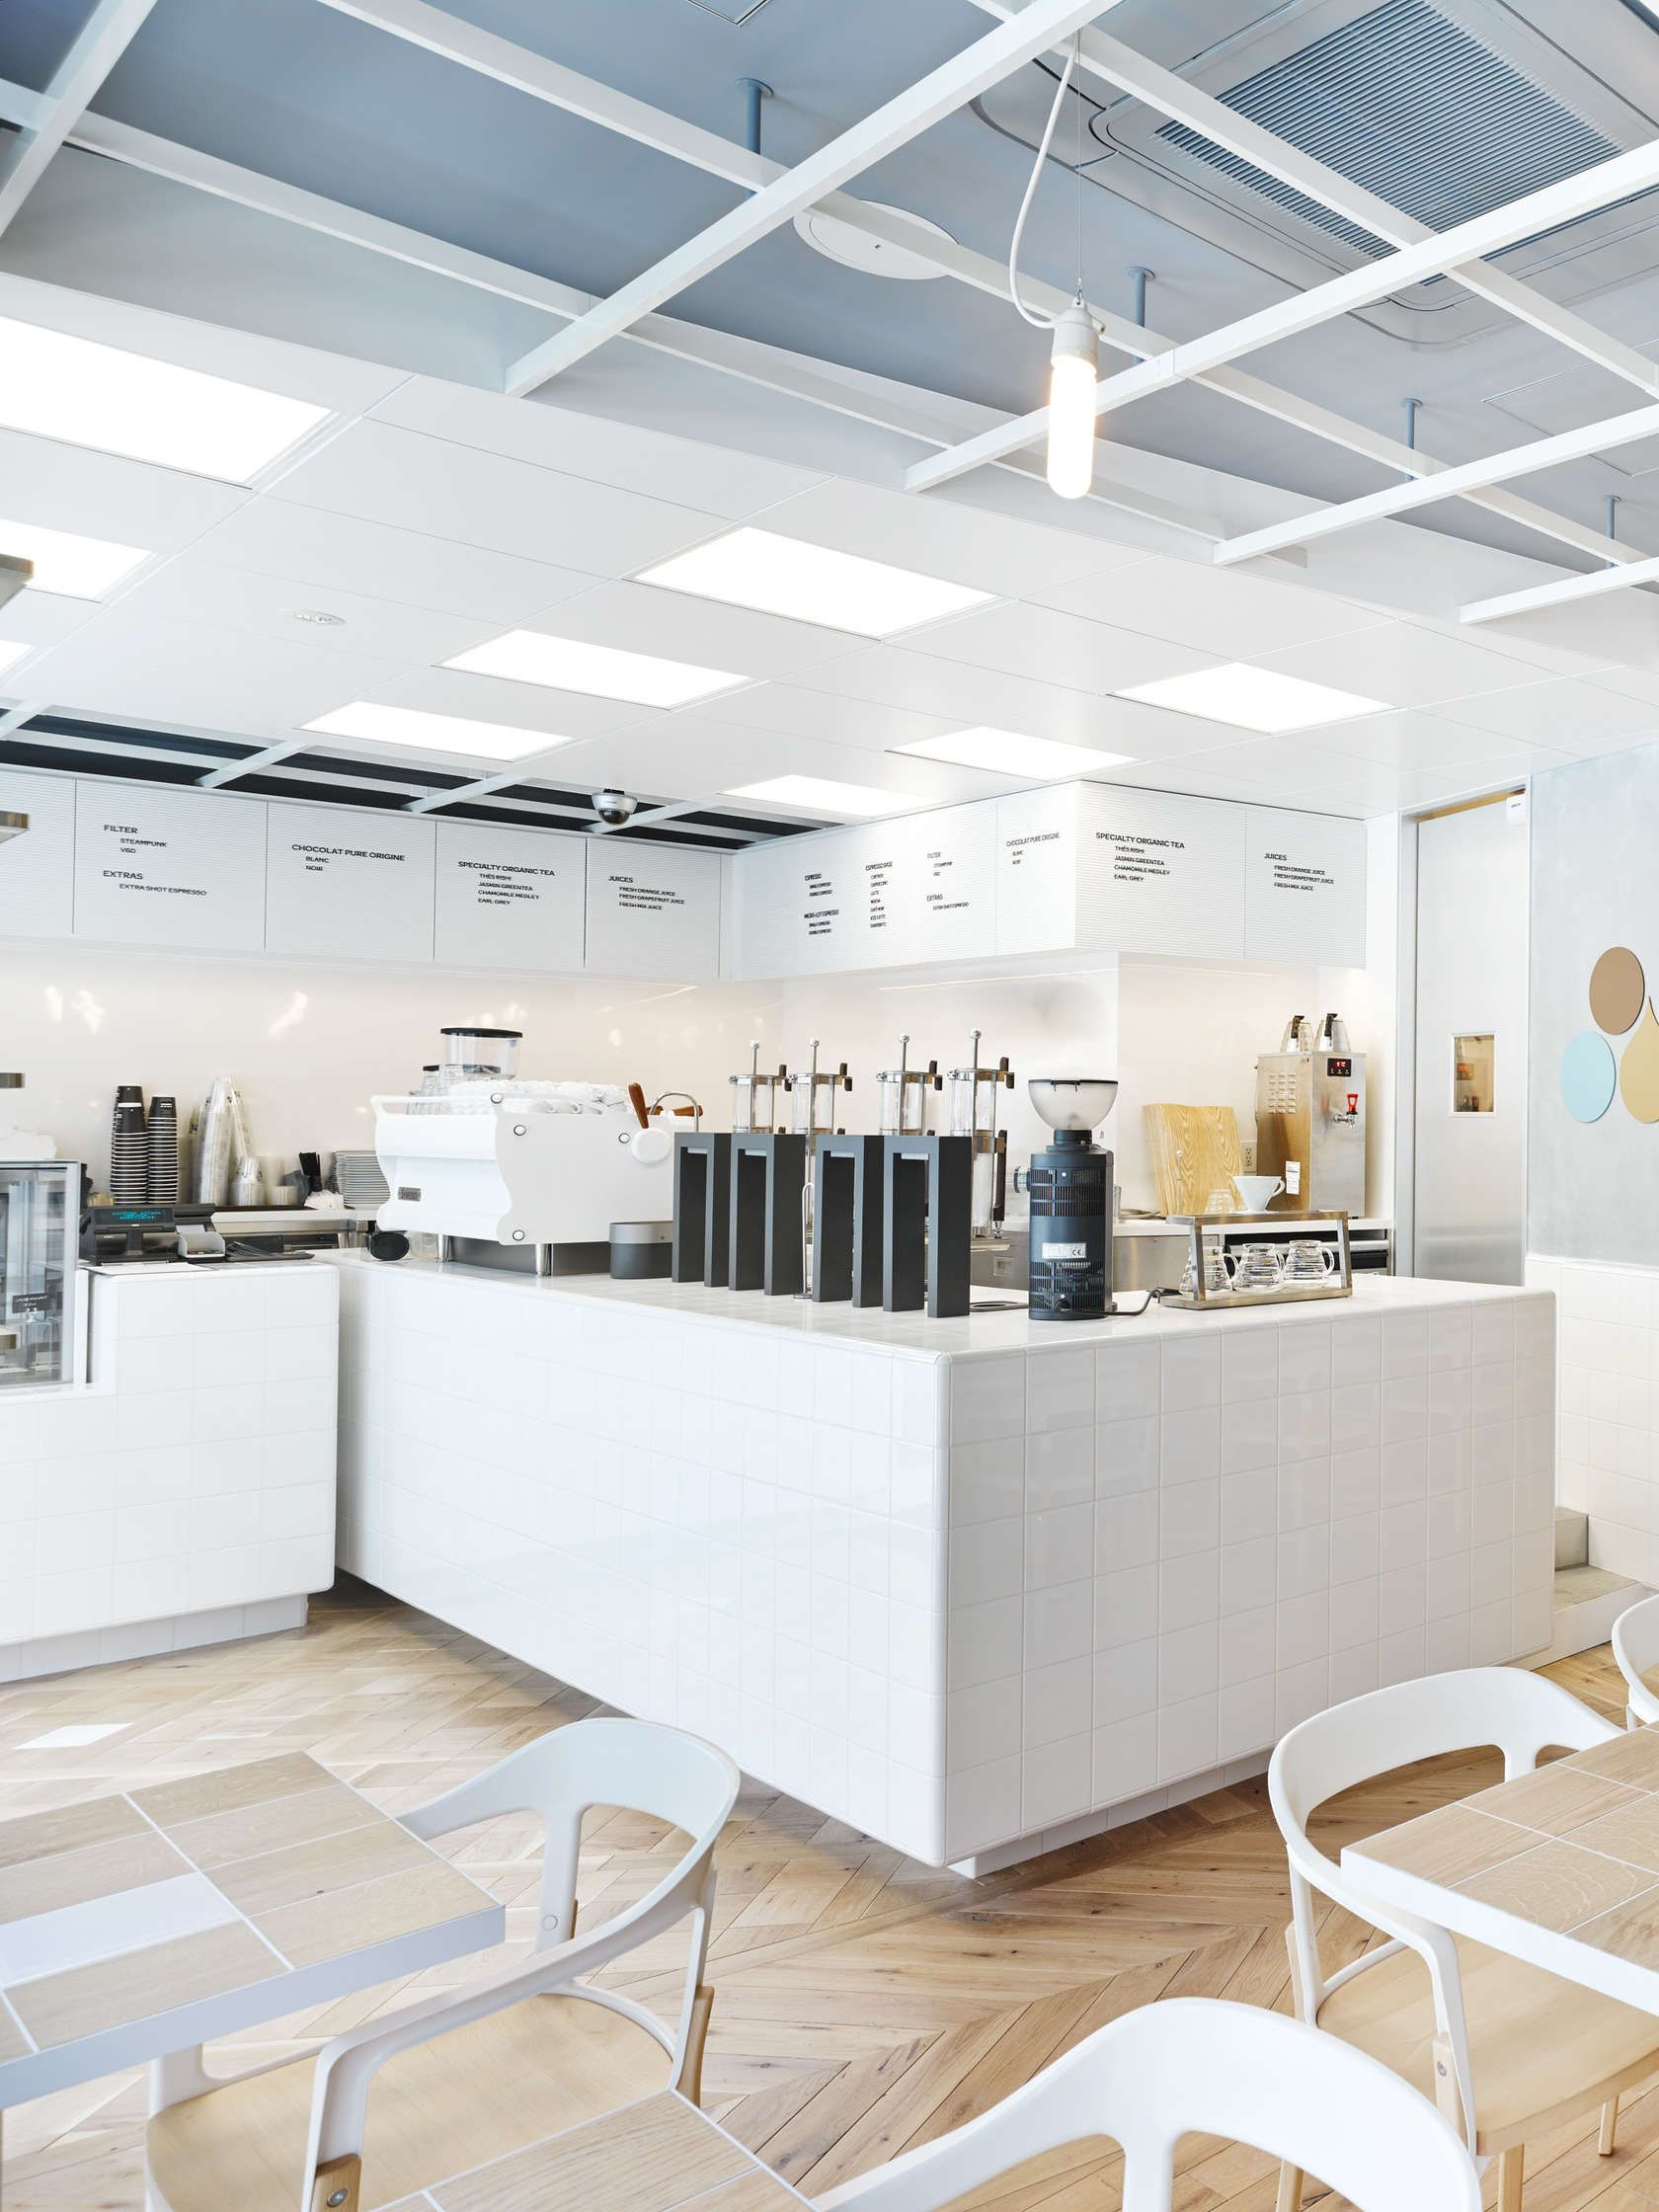 Laboratory inspired minimalist coffee bar white tiles minimalist and menu - Bar counter designs small space minimalist ...